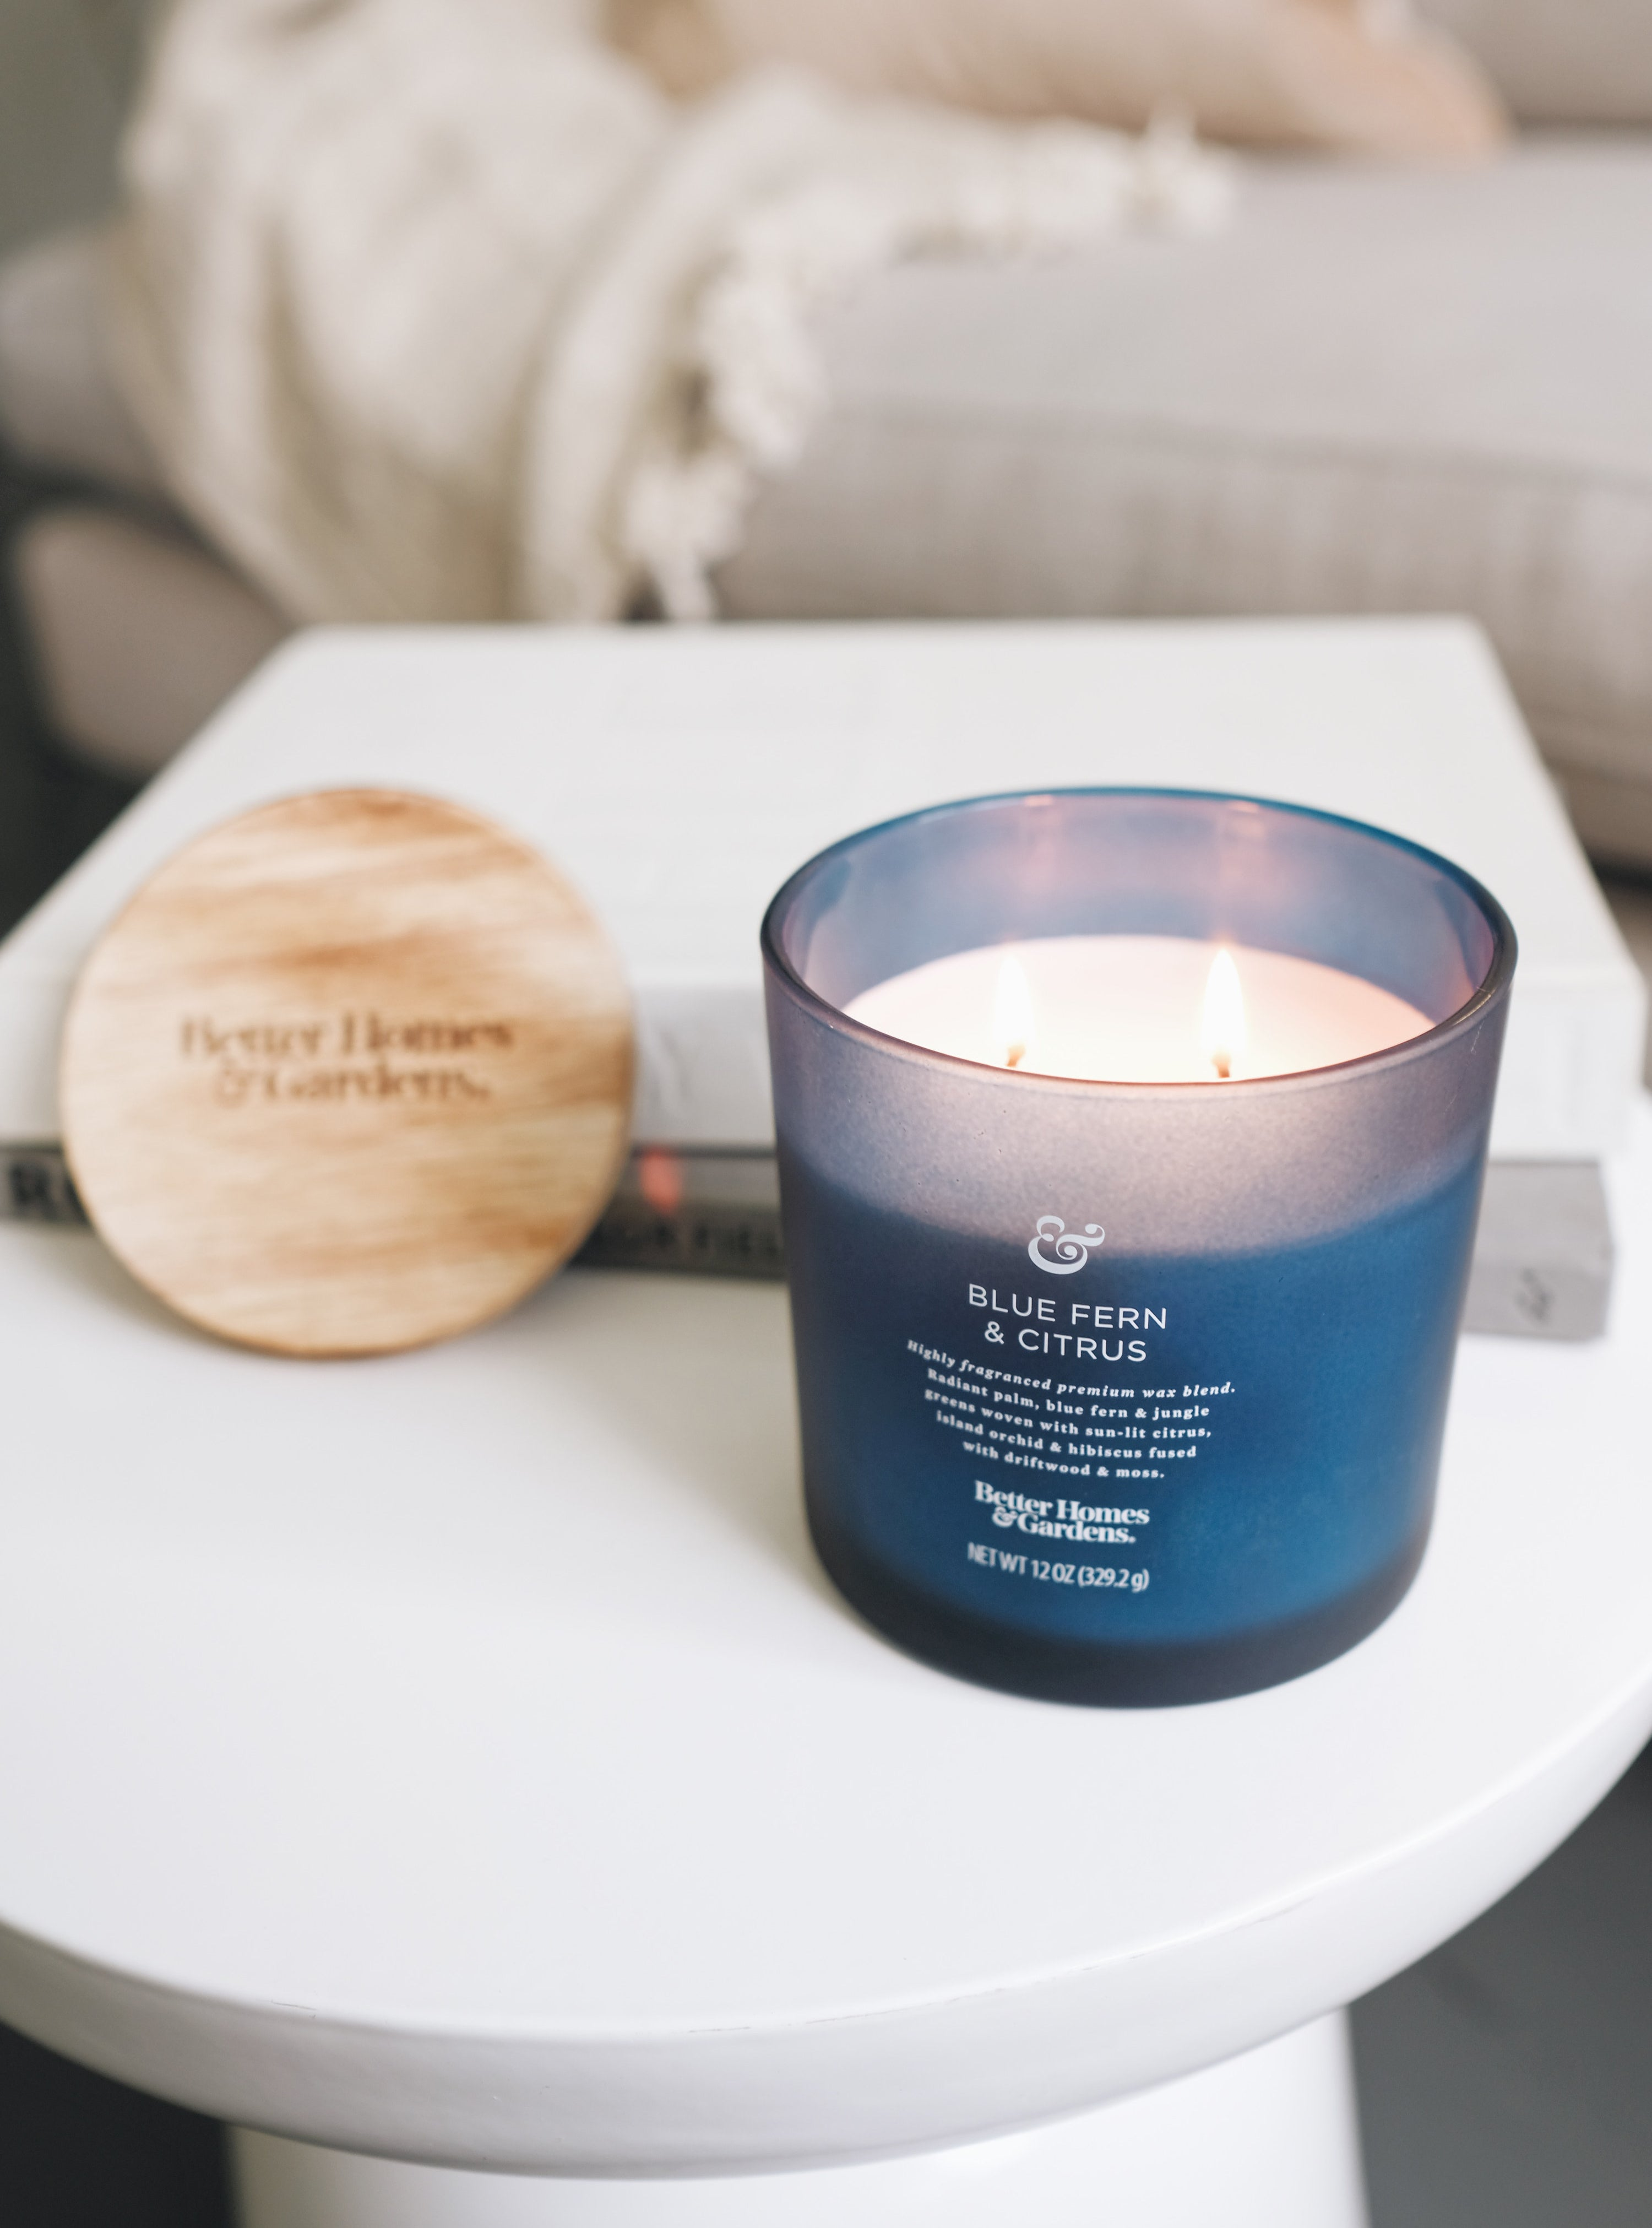 the blue fern and citrus scent with wood-like lid and blue jar